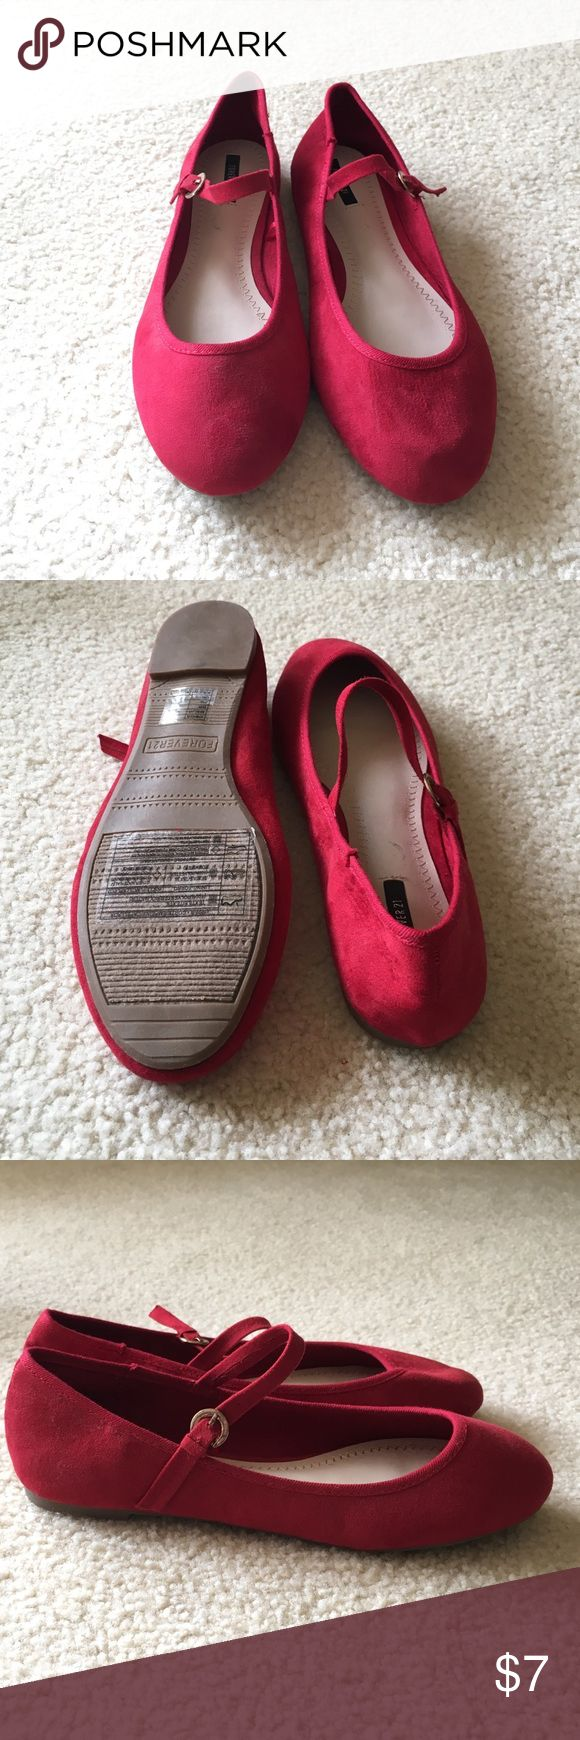 Red Mary-Jane faux suede ballet flats. Never worn! Super cute cherry red flats! Forever 21 Shoes Flats & Loafers